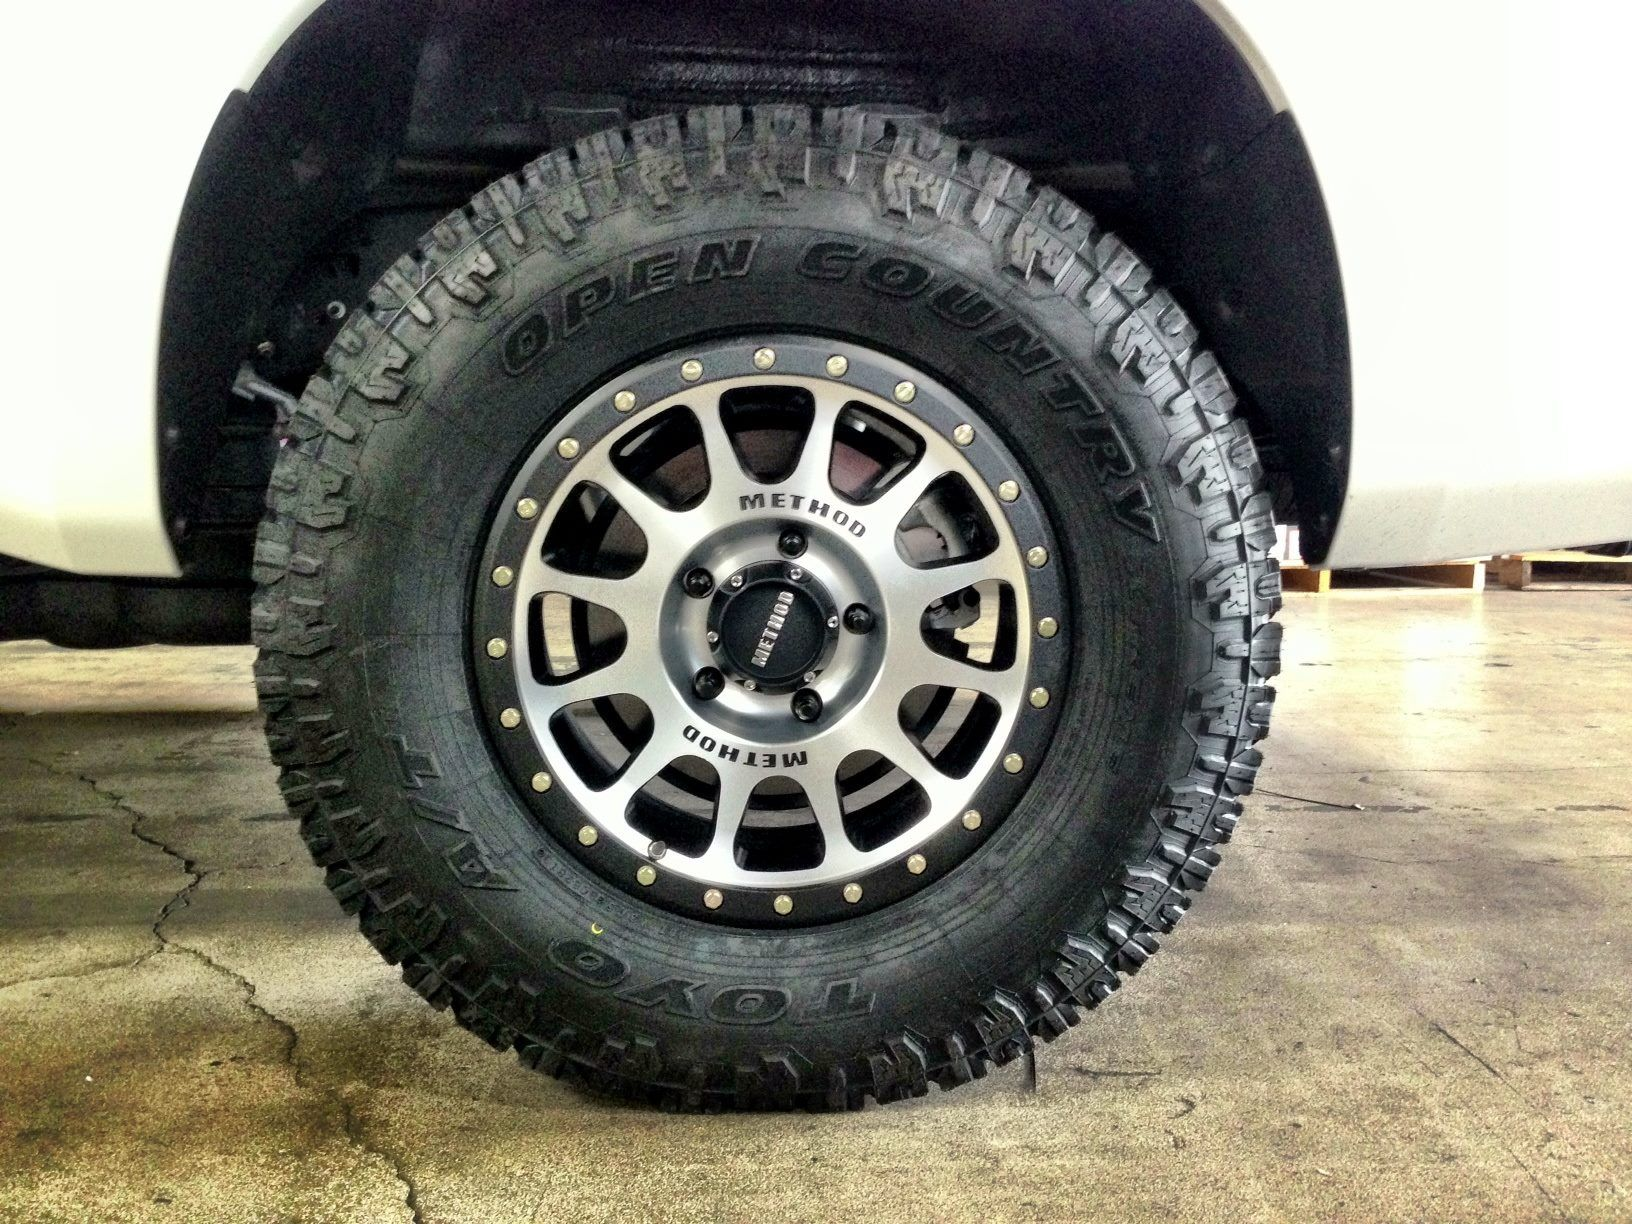 Pin on Truck Wheels/Tires